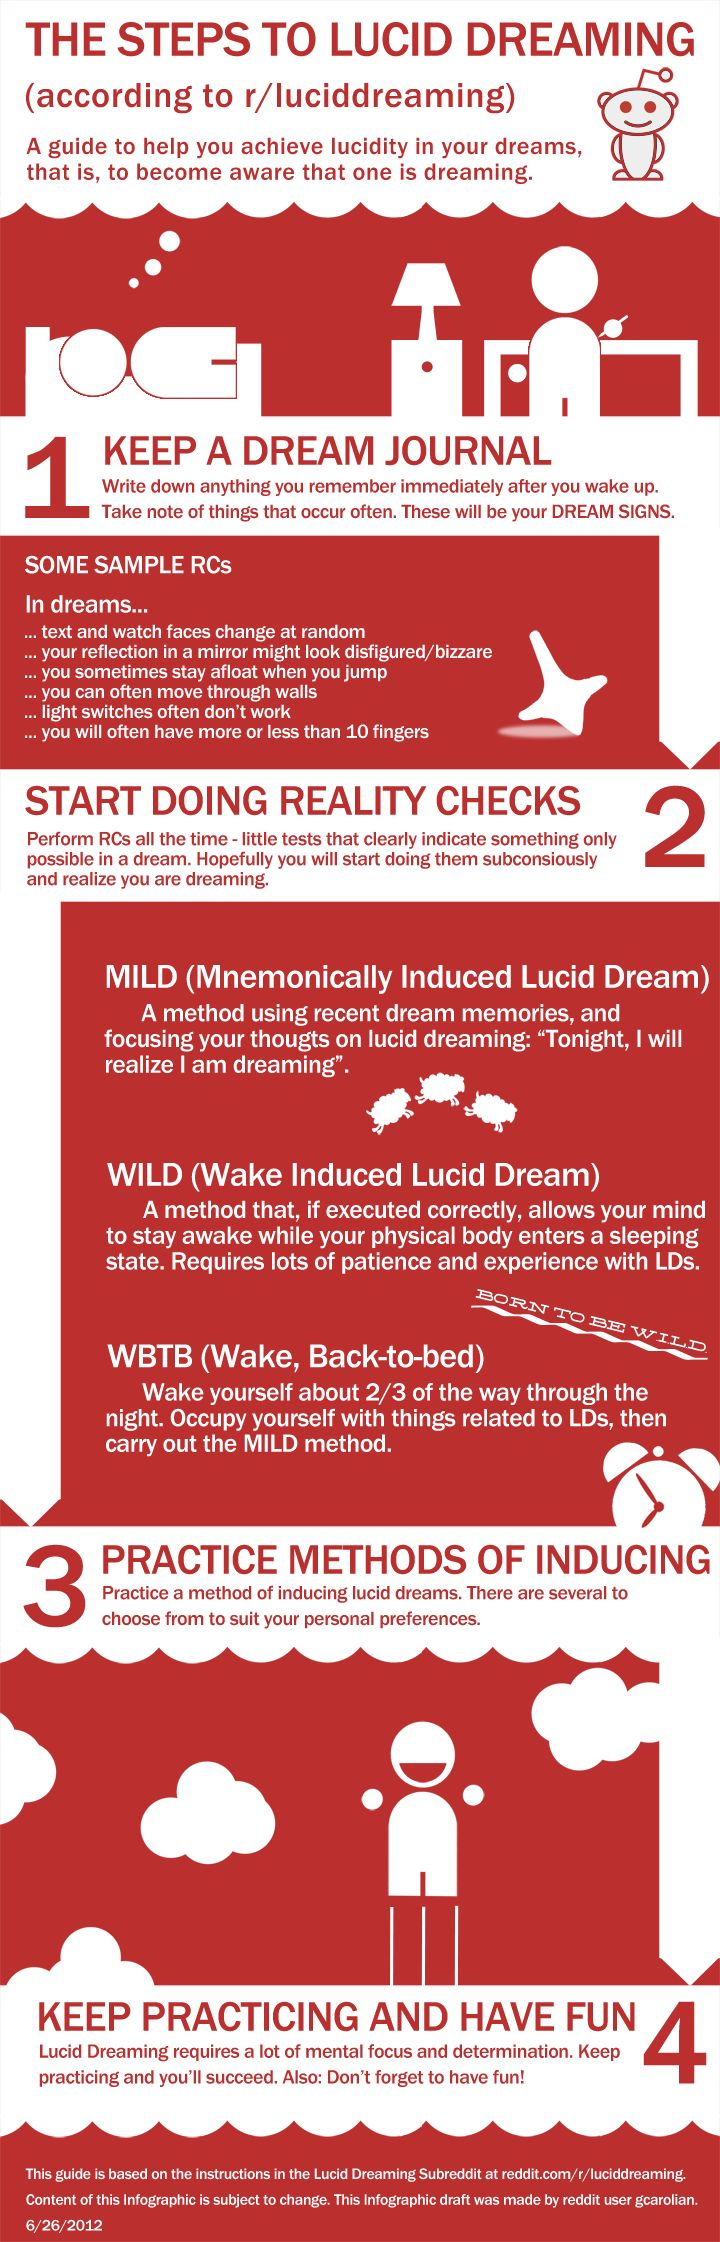 Lucid Dreaming instructions.